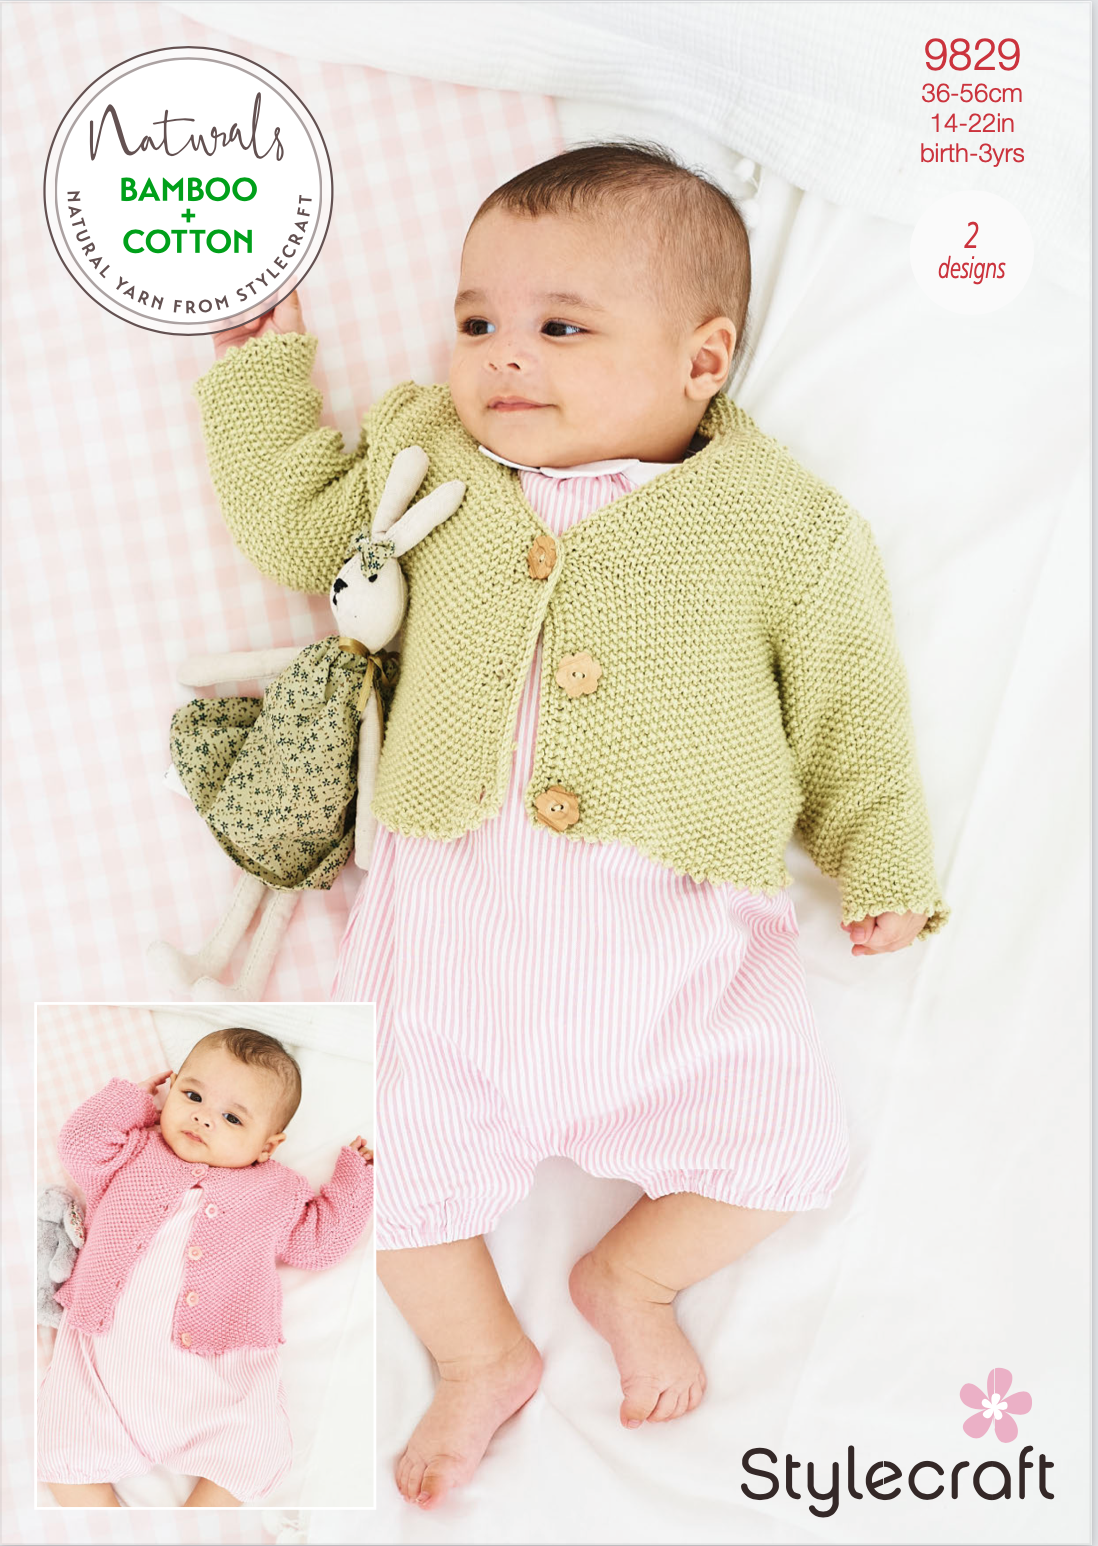 Stylecraft Pattern Naturals Bamboo+Cotton 9829 (download) product image